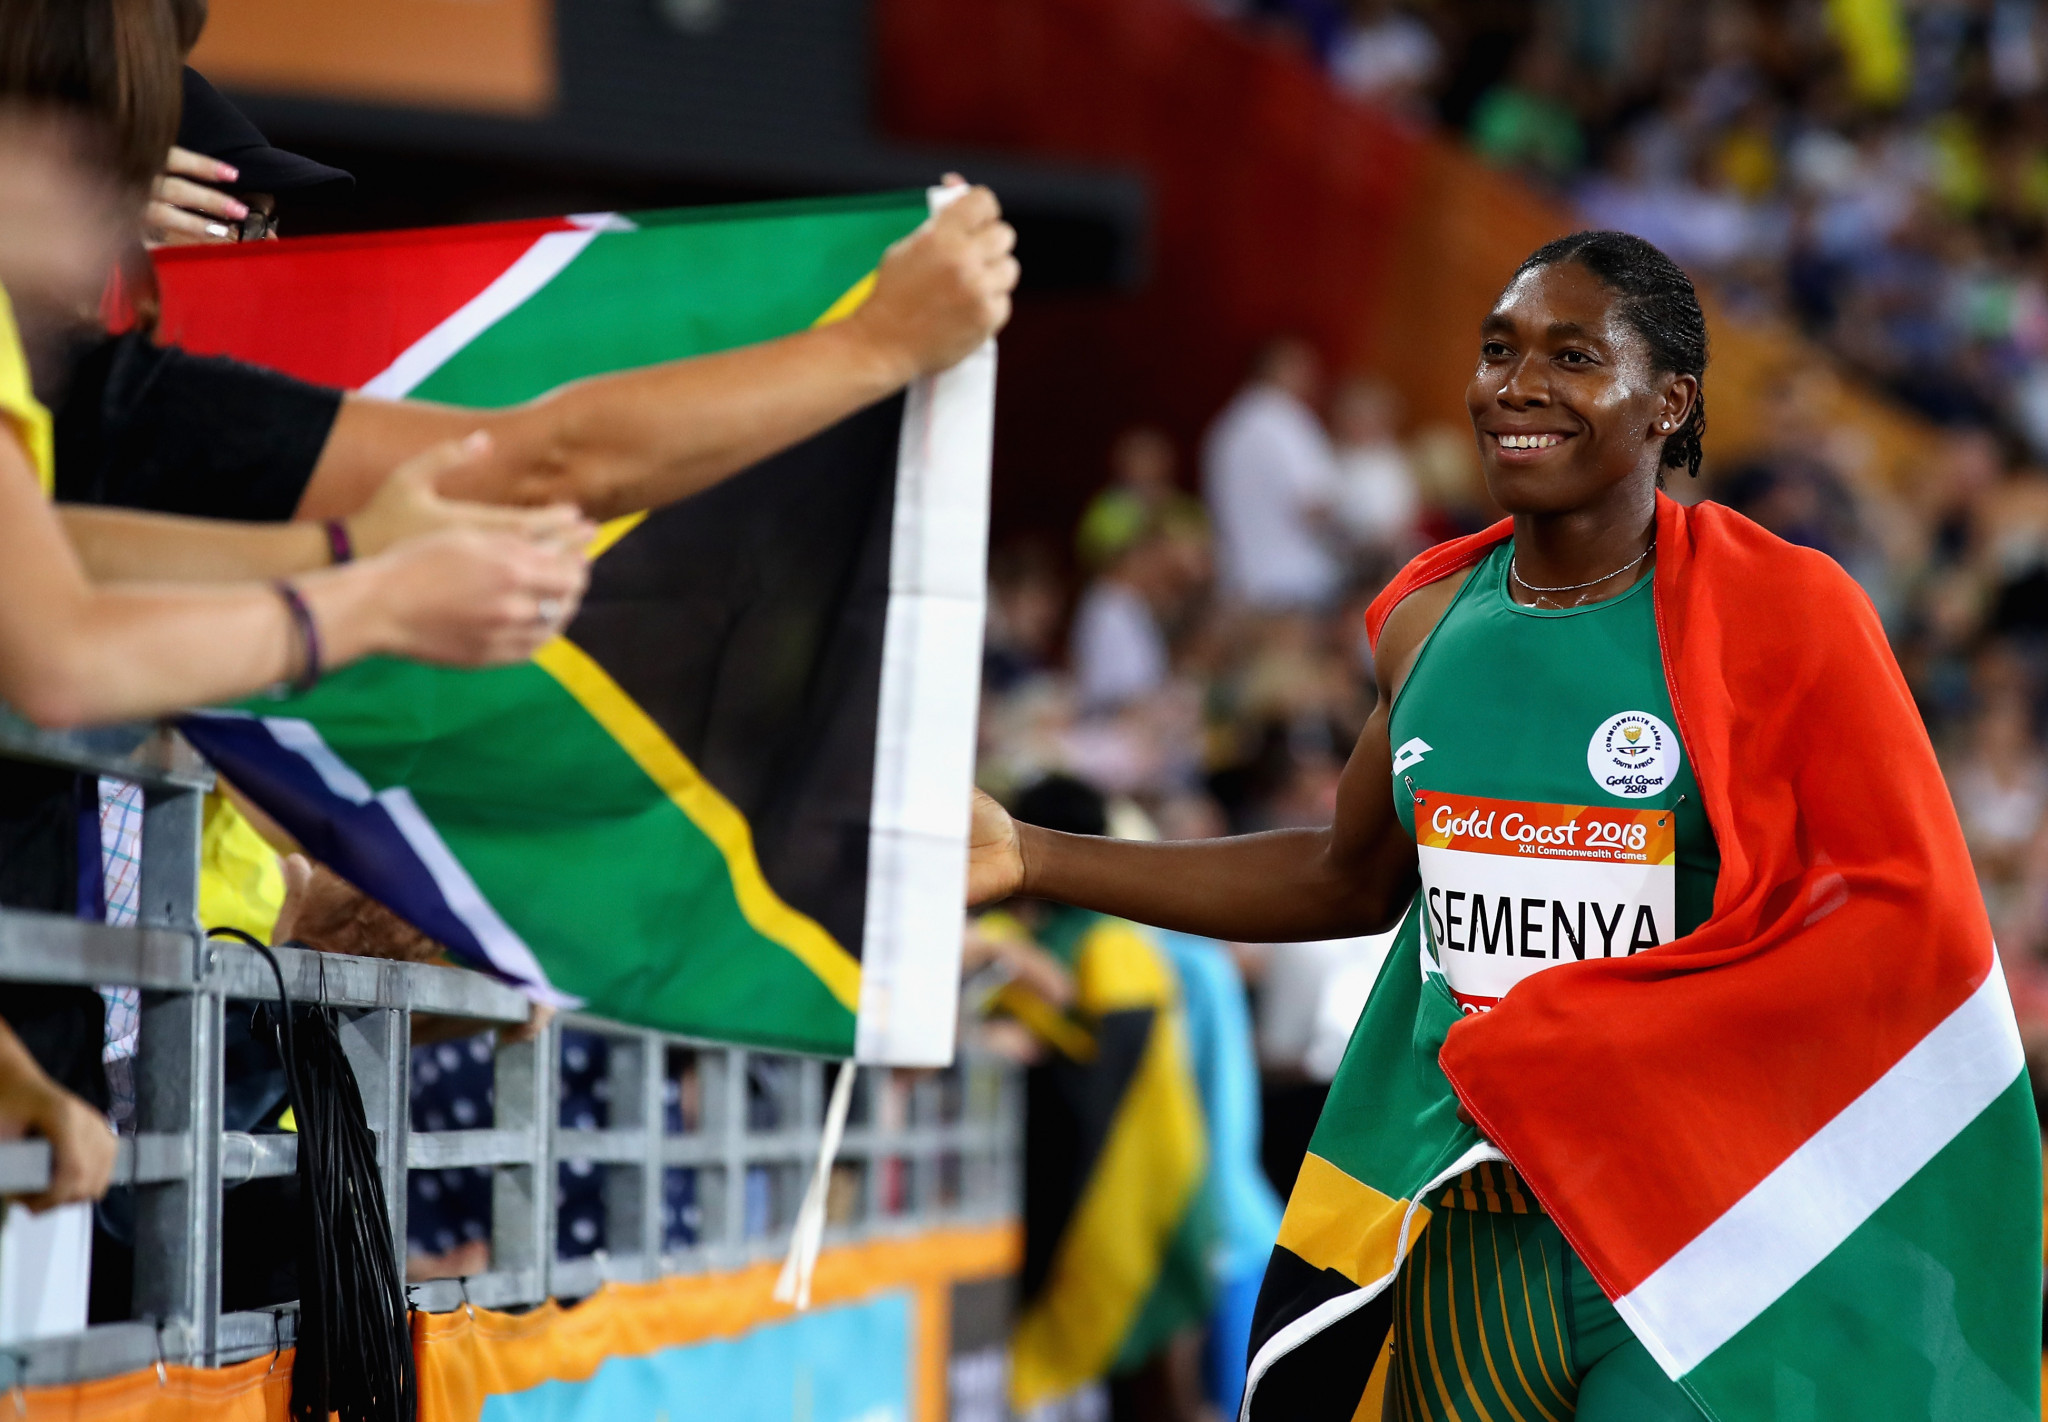 Semenya and Cheptegei complete track doubles at Gold Coast 2018